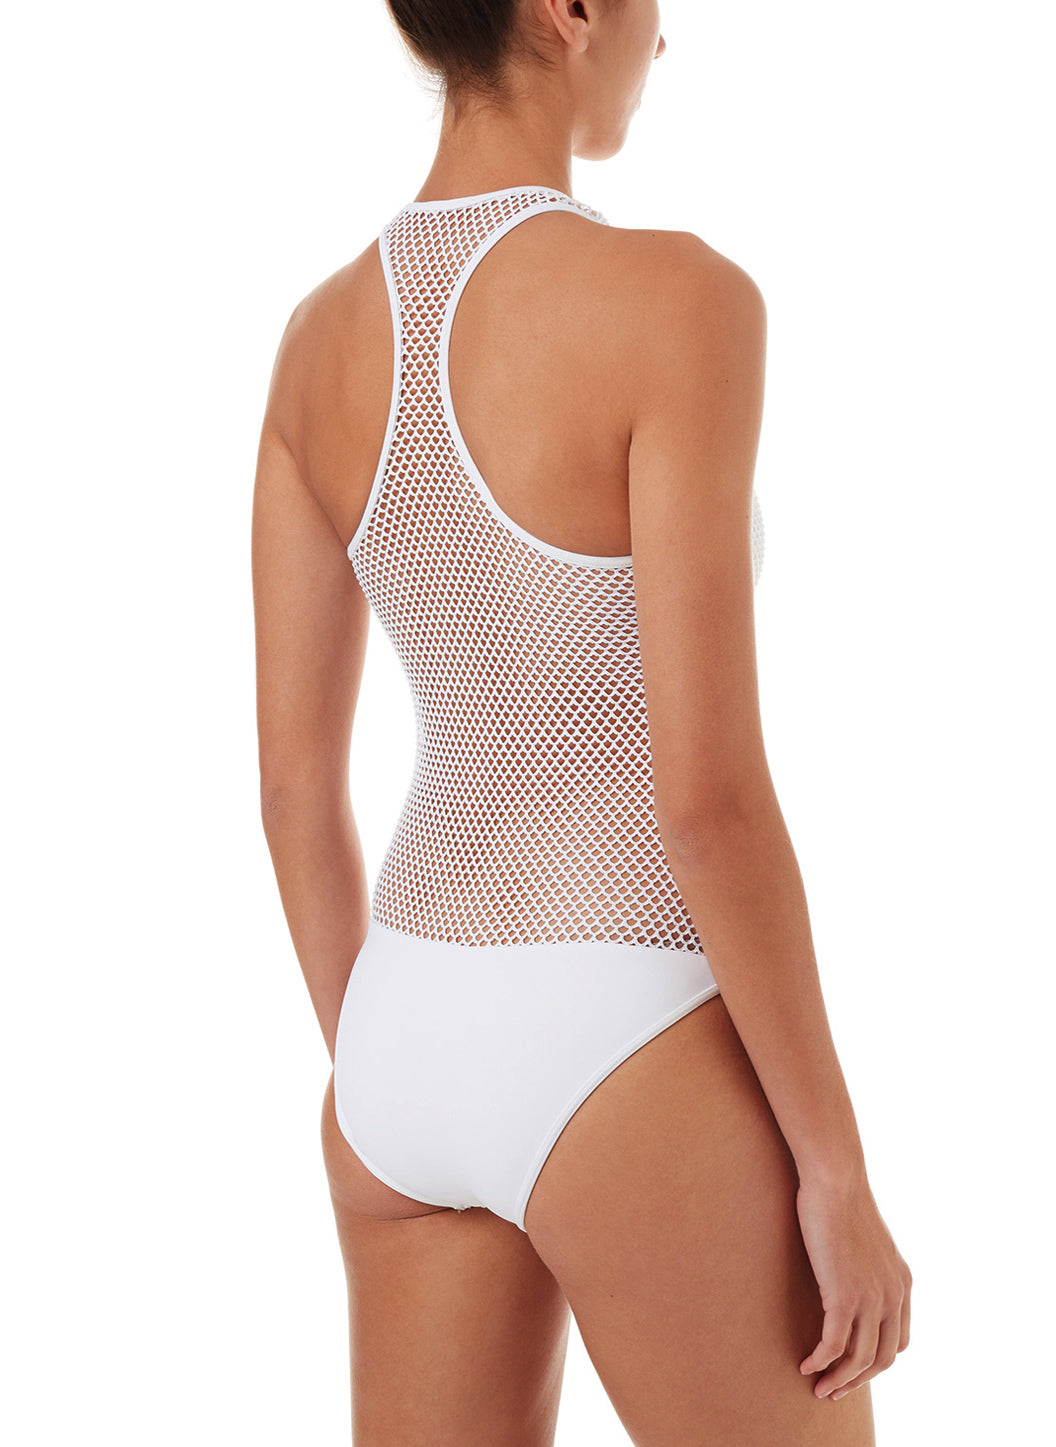 Zuma White Sports Zip-Up Racerback Swimsuit - Melissa Odabash White Swimsuits